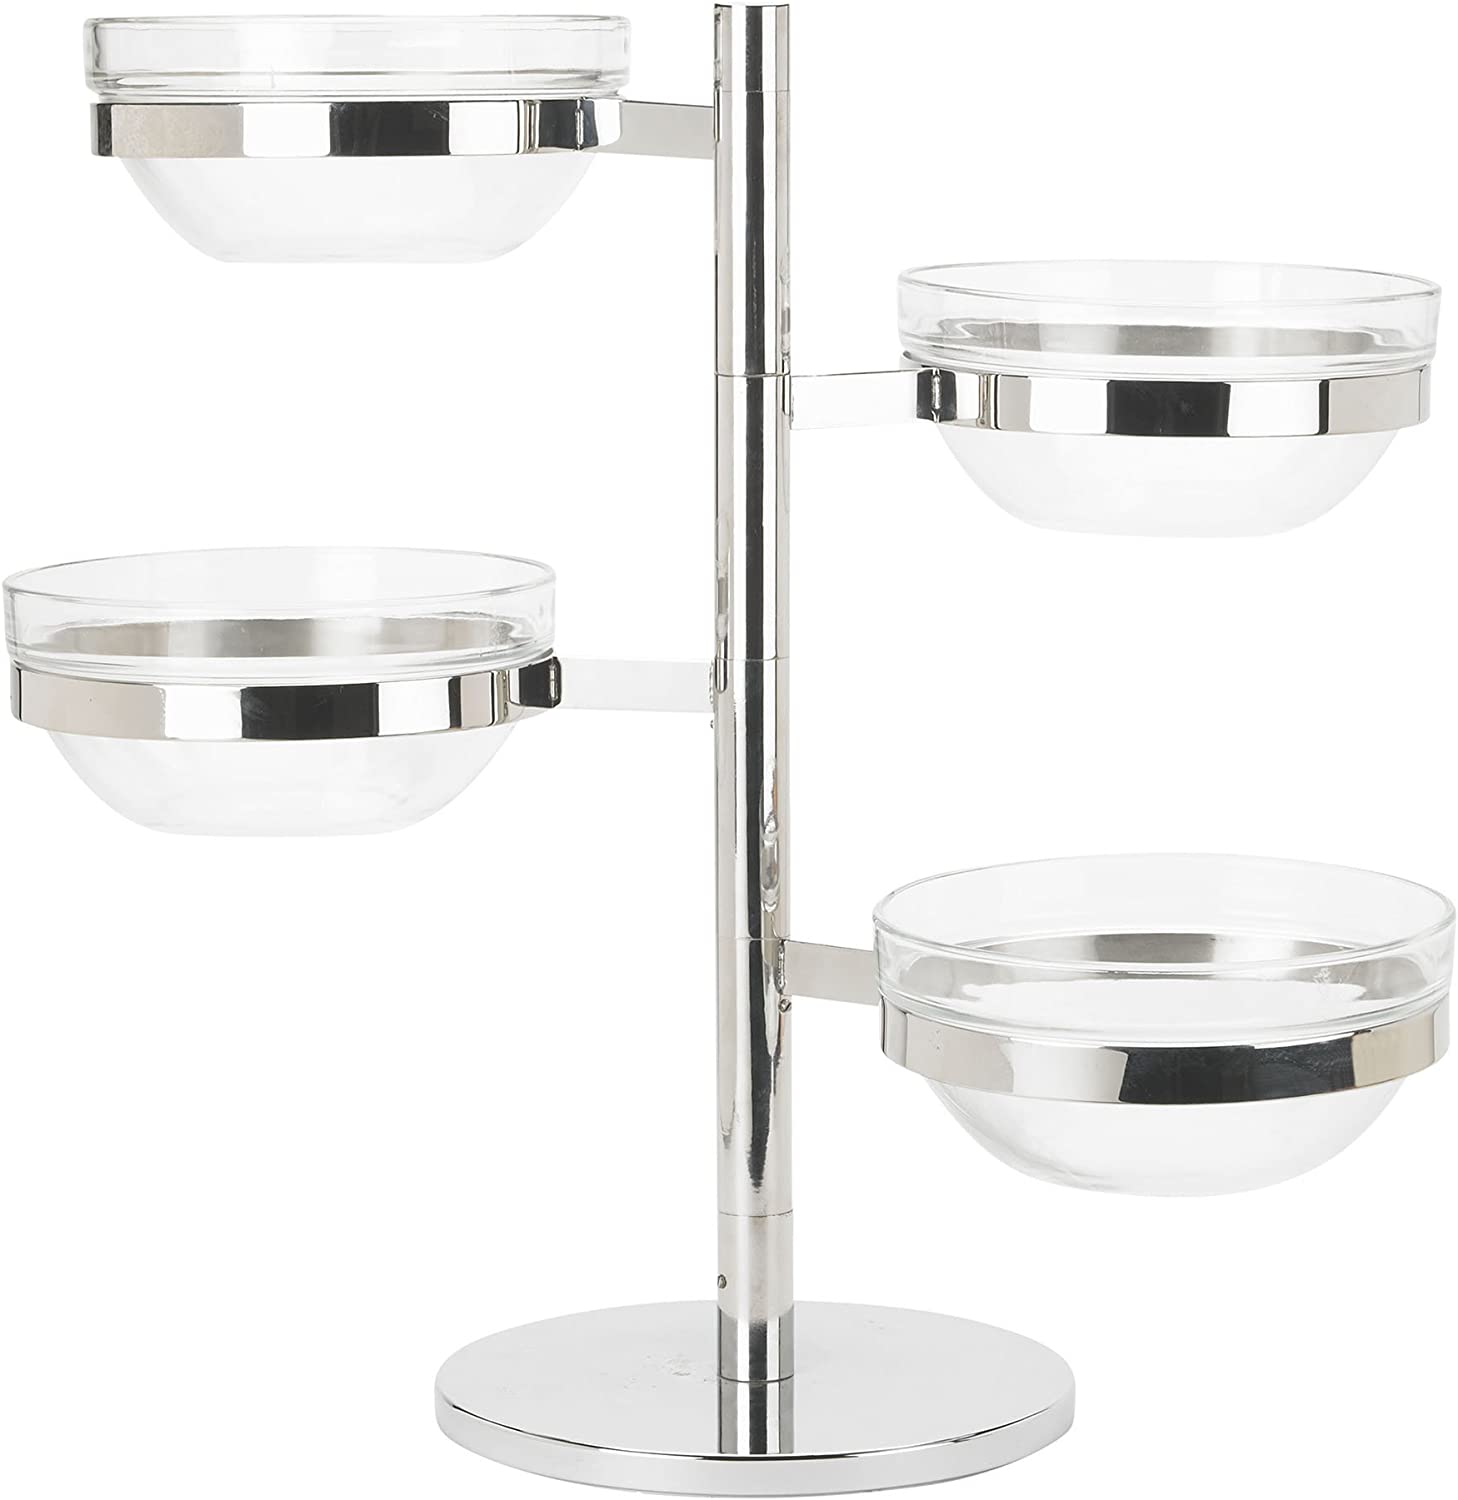 Winco TDSF-4 4 Tier Dallas Now free shipping Mall Swing Display Glass Bowl Set Arm